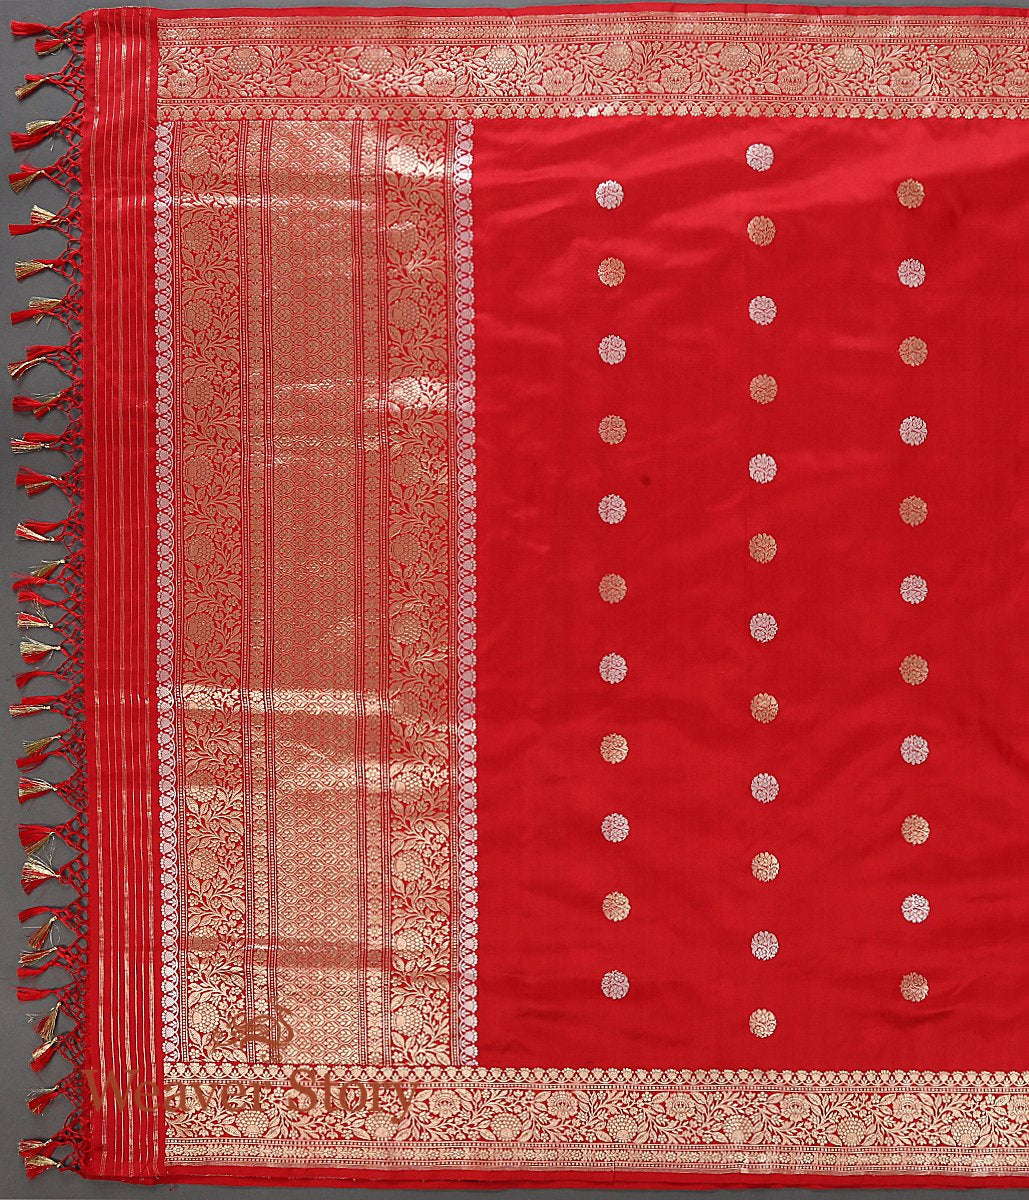 Handwoven Red Katan Silk Dupatta with Kadhwa Booti